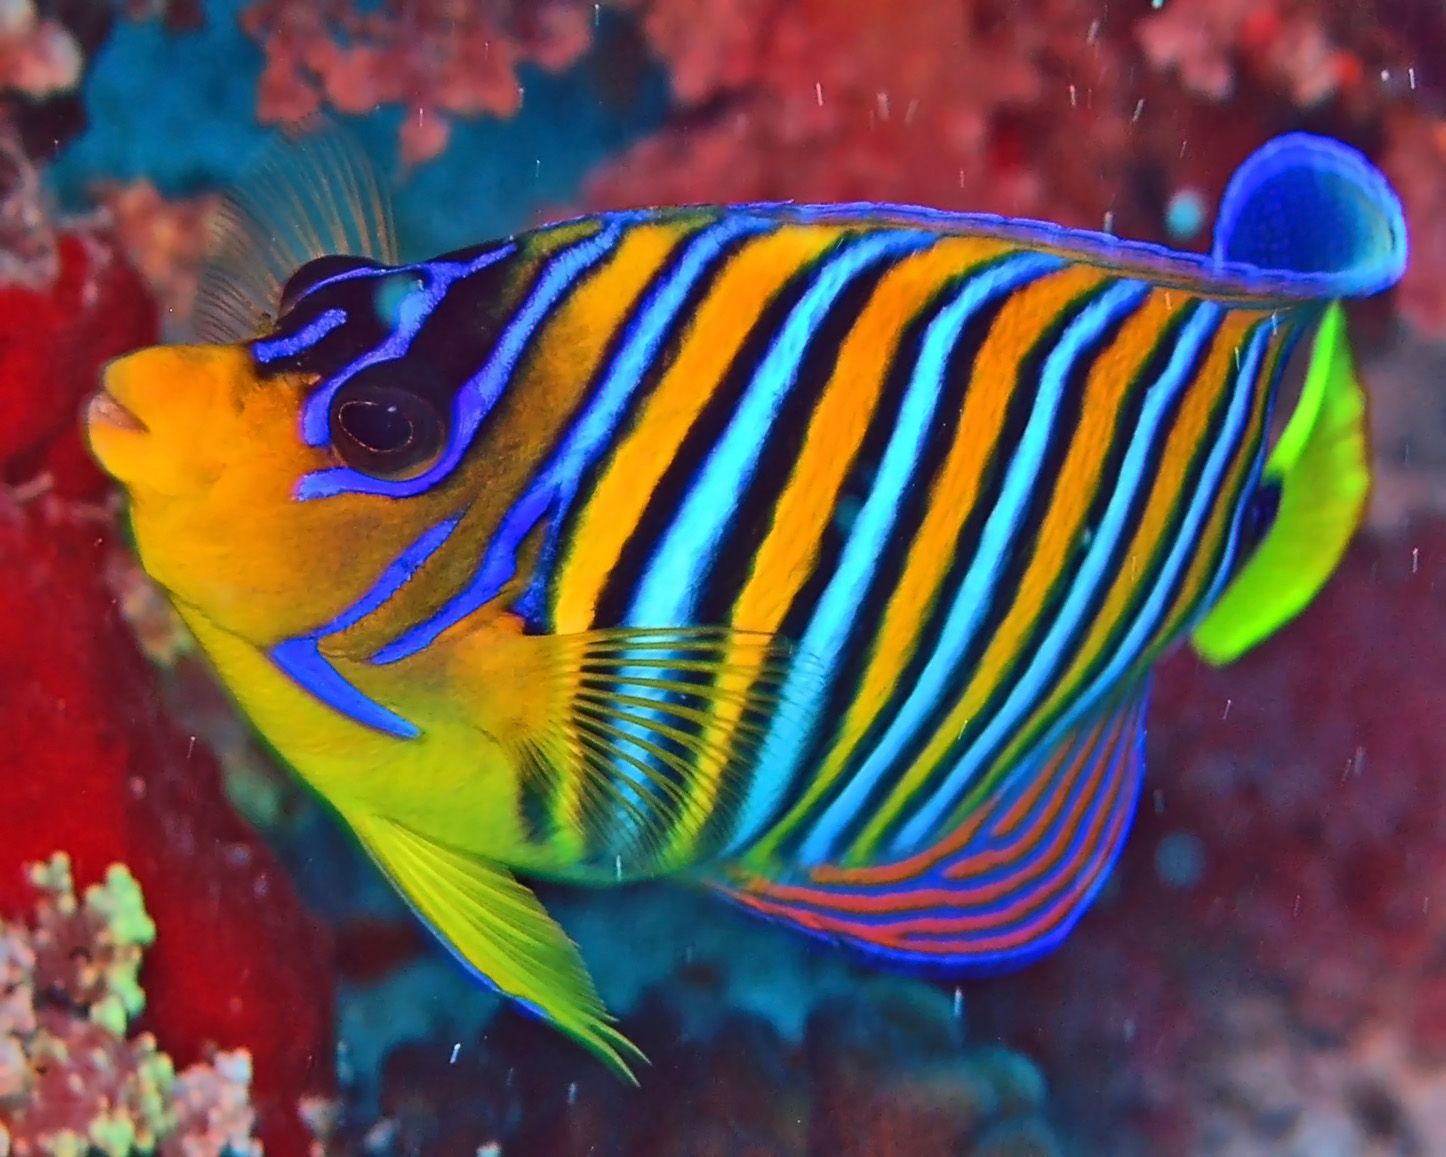 The coral reef royal angelfish olivia k for Saltwater reef fish